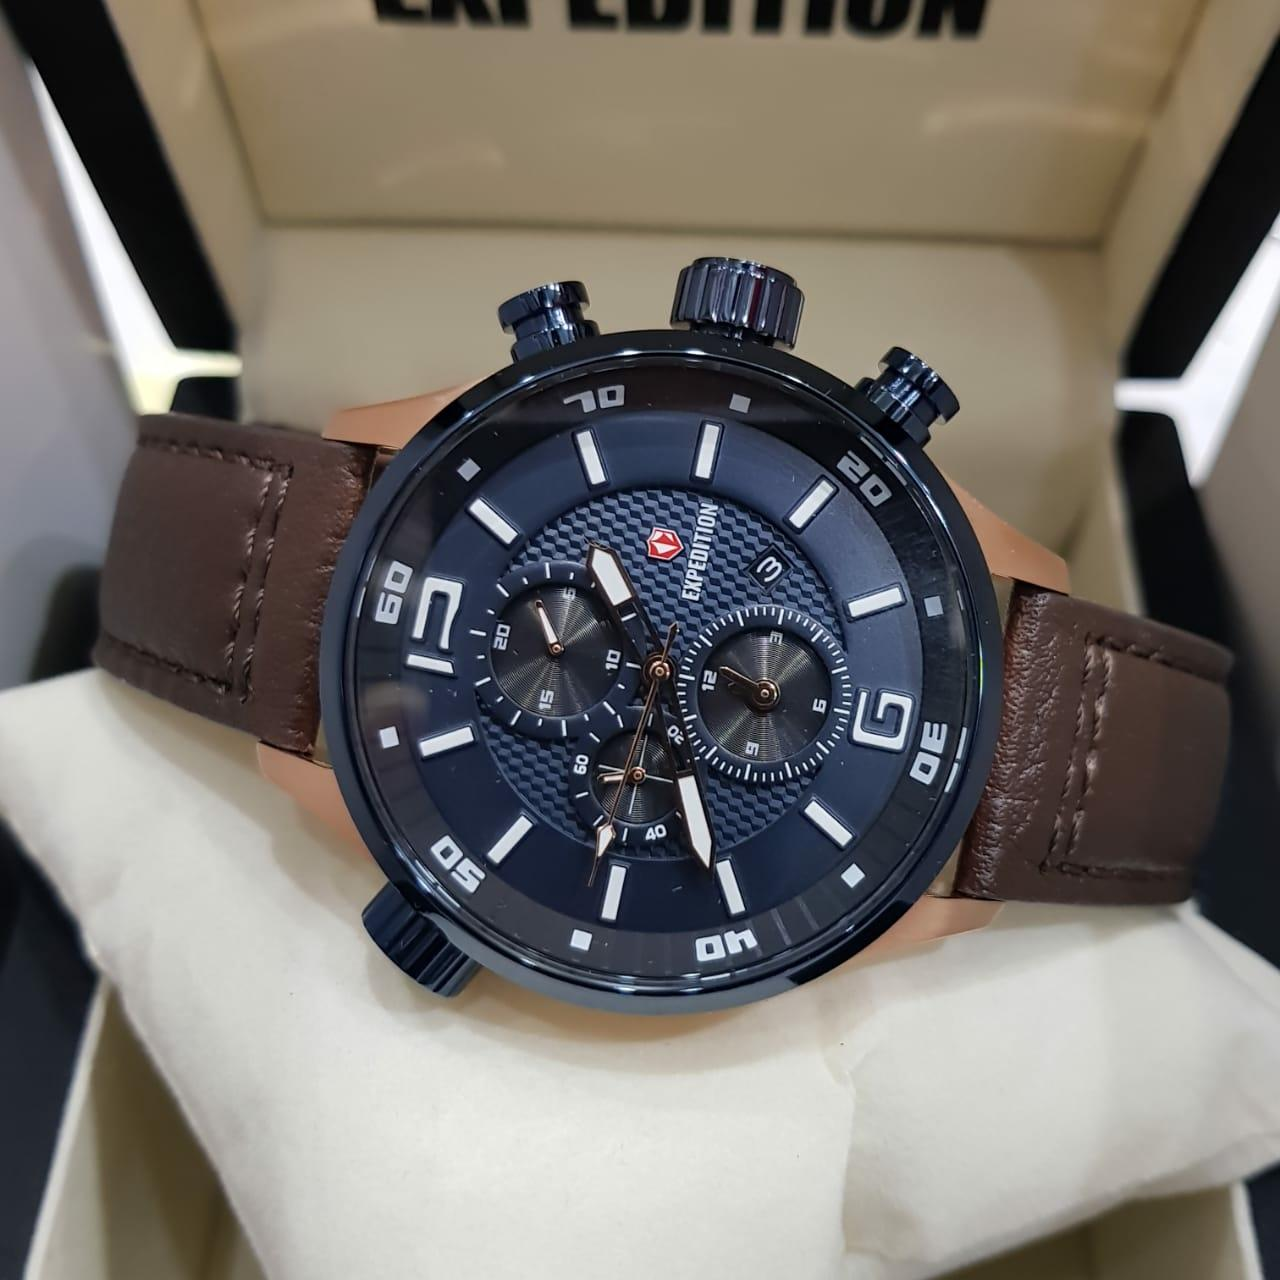 Jam Tangan Expedition (Pria) Original  e8b1248563